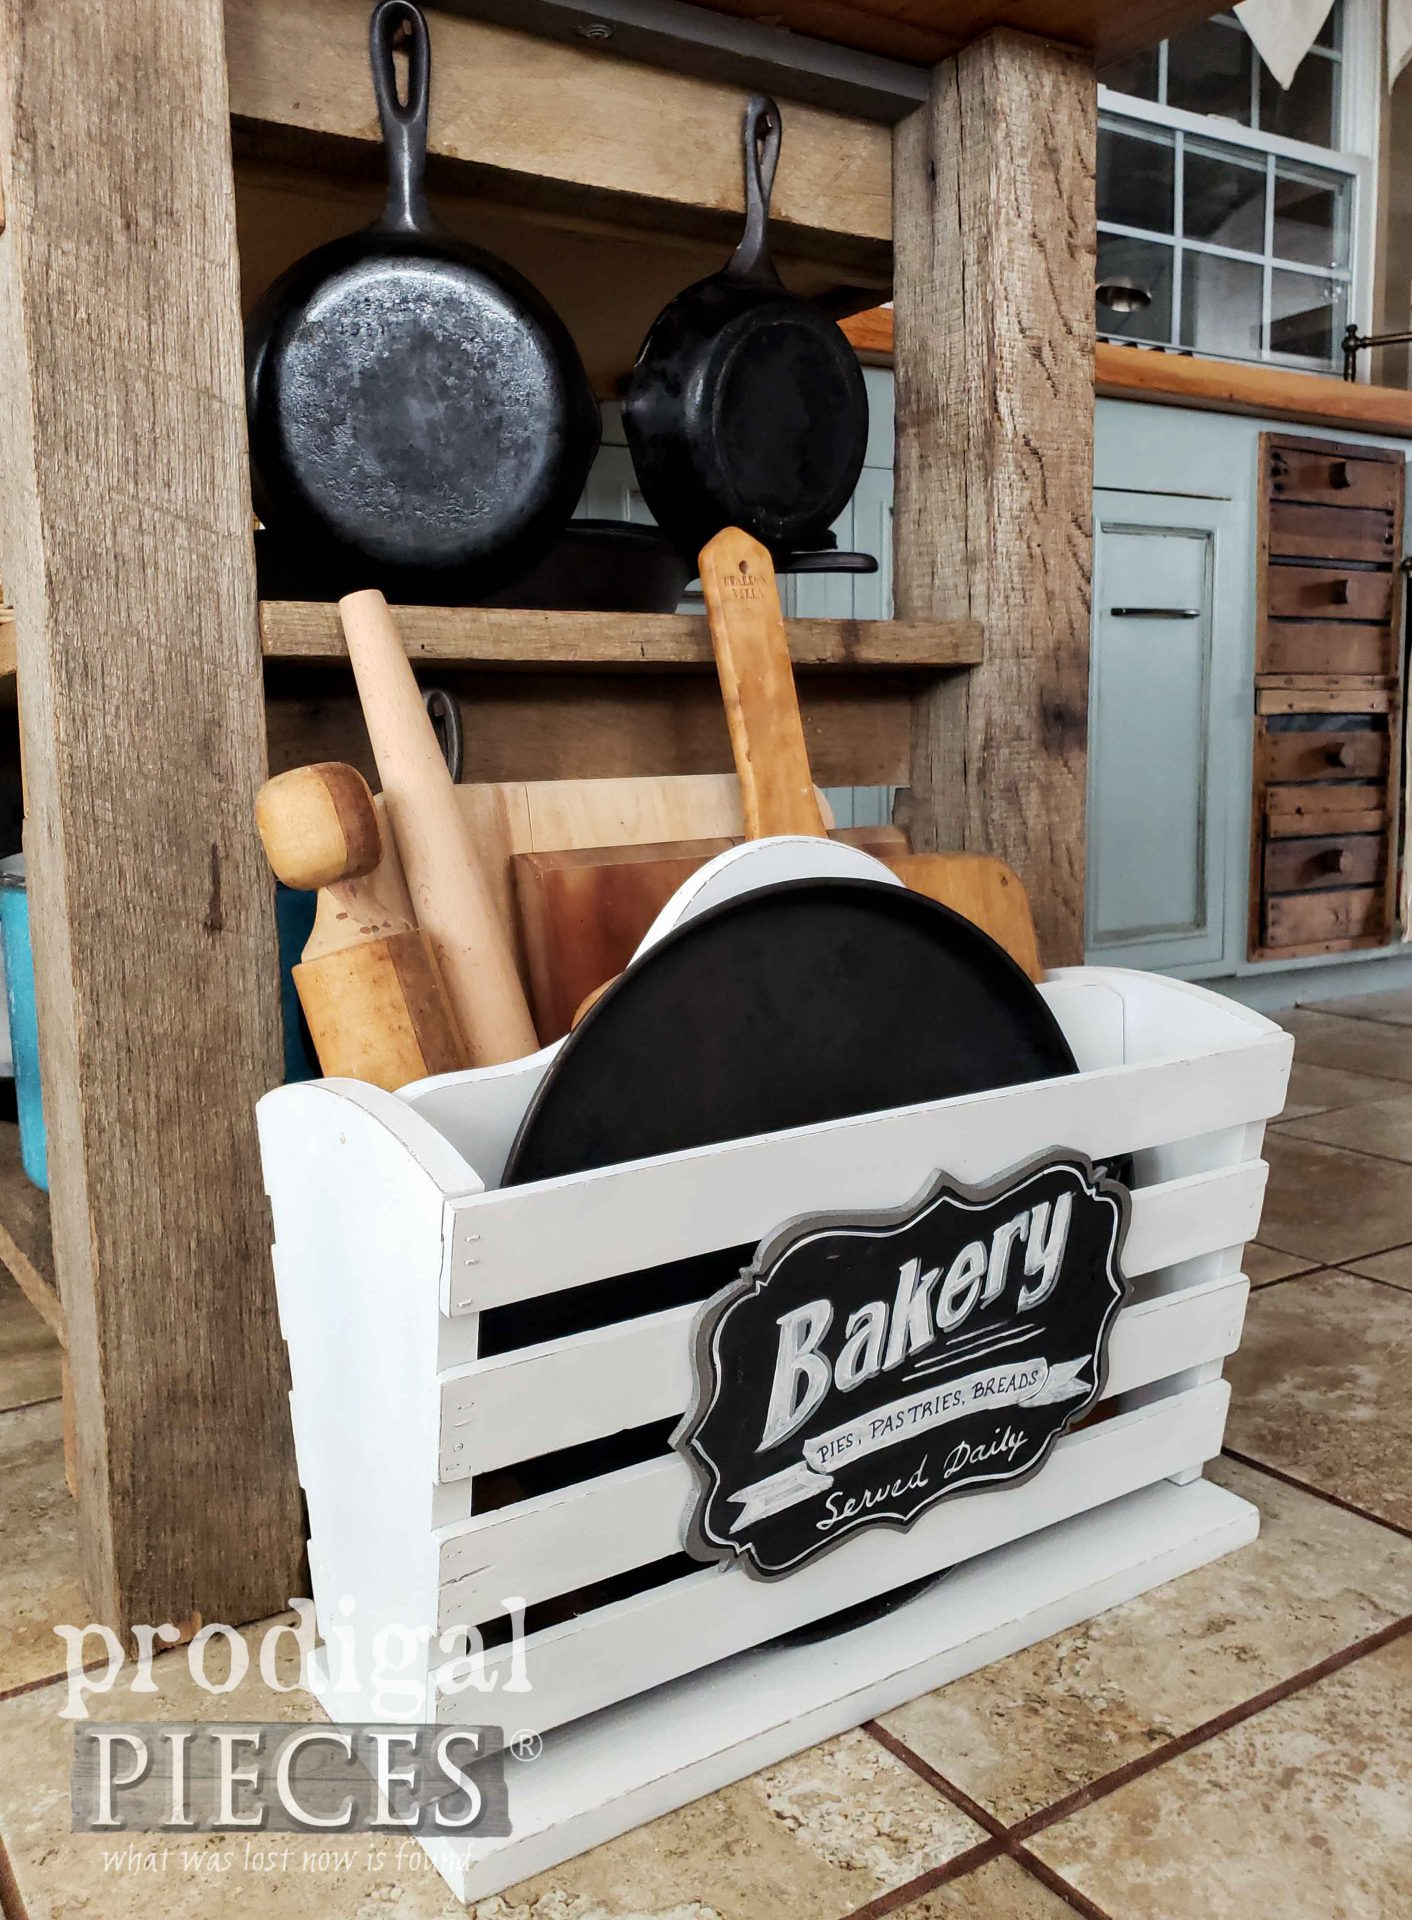 DIY Kitchen Storage from Upcycled Magazine Rock by Larissa of Prodigal Pieces | prodigalpieces.com #prodigalpieces #farmhouse #home #homedecor